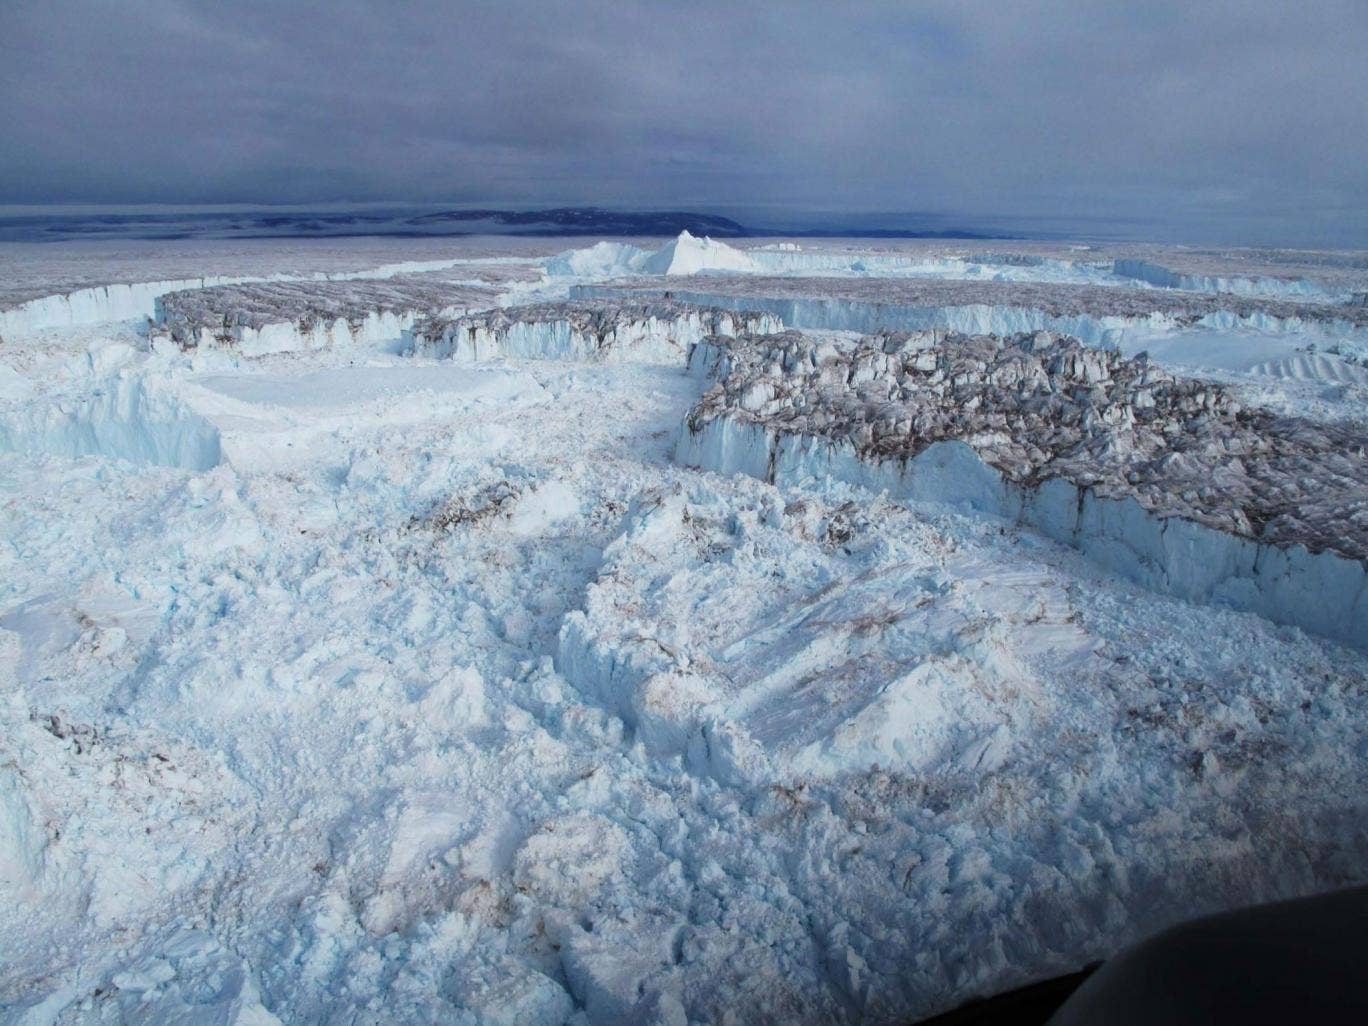 Glaciers in north-east Greenland disintegrate into the ocean